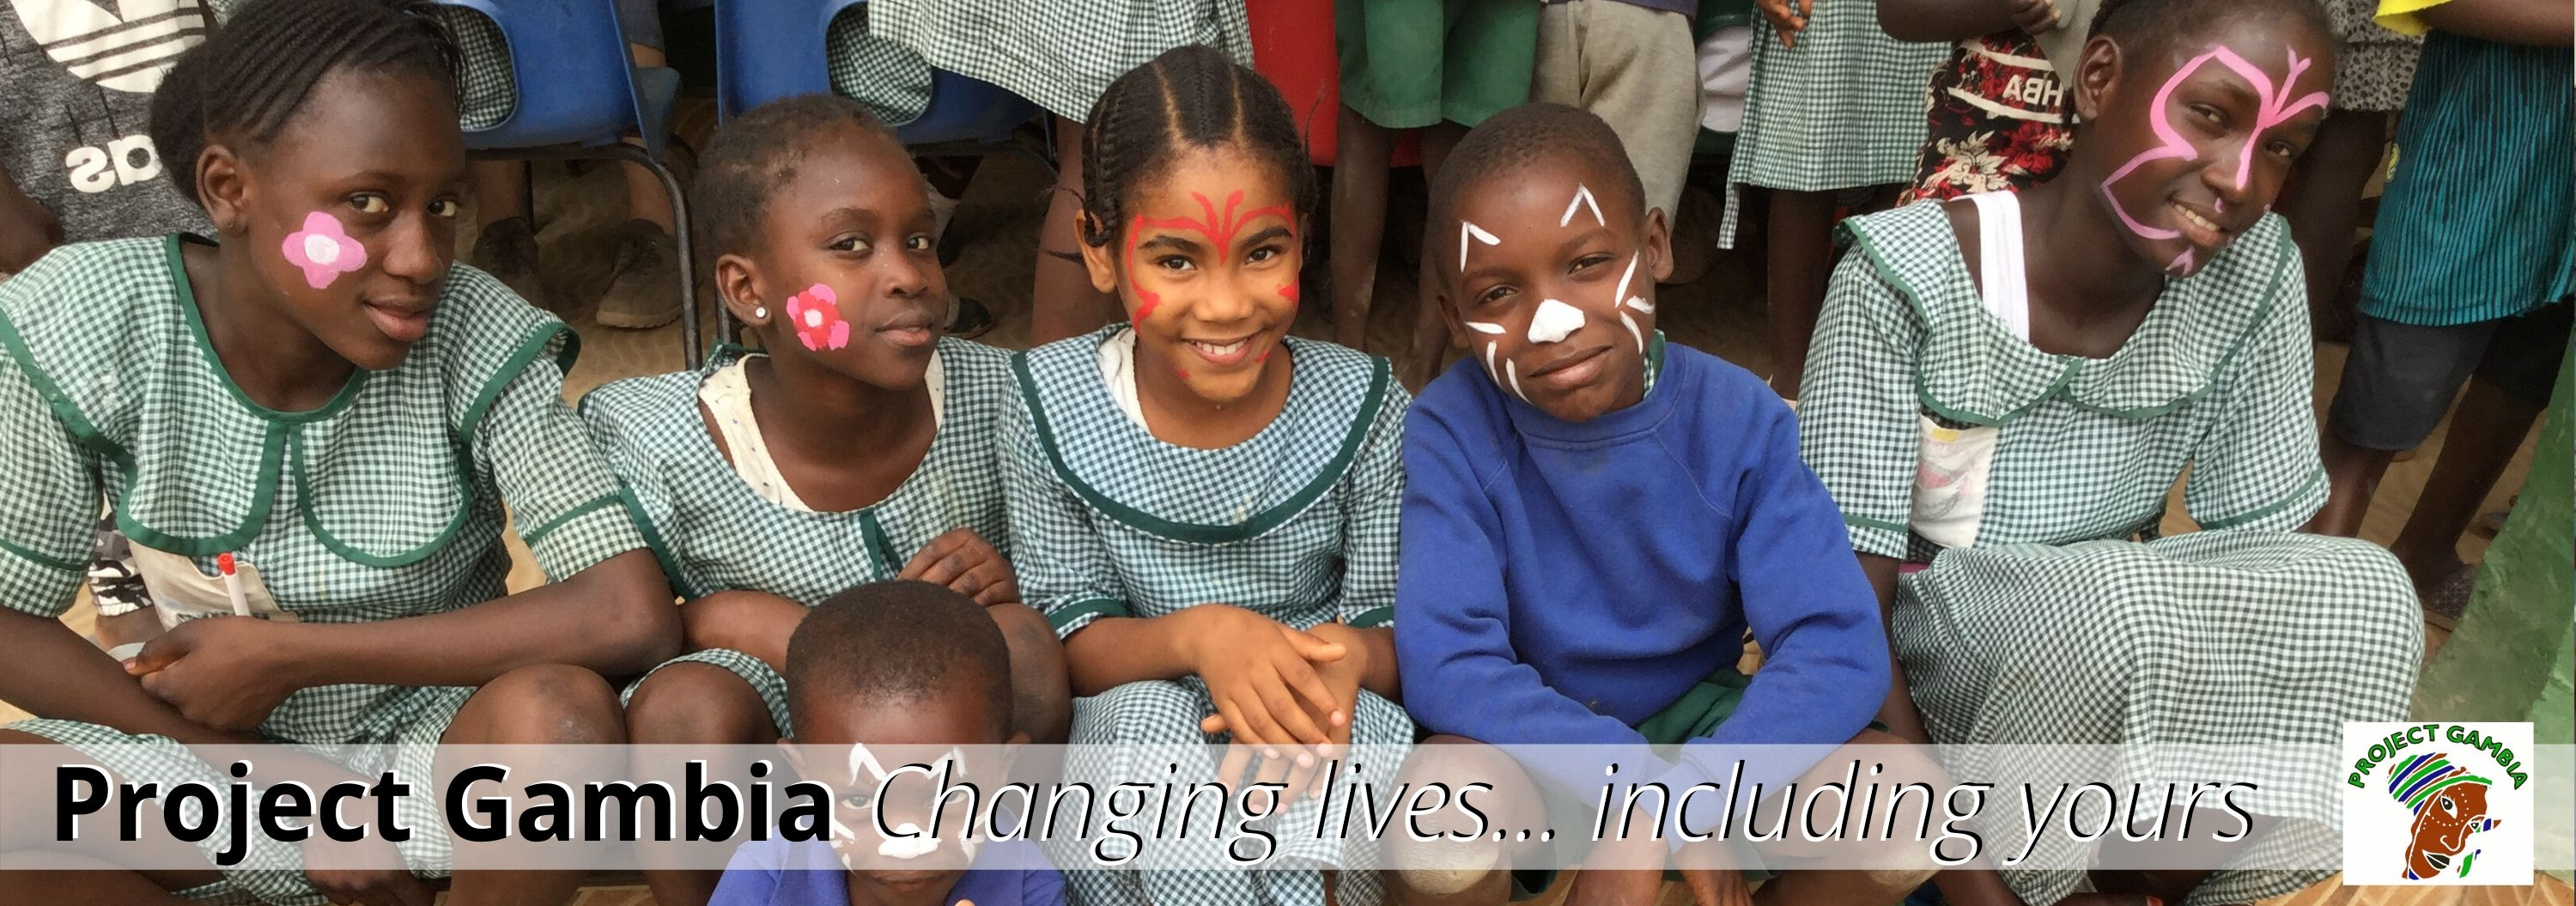 Project Gambia Website